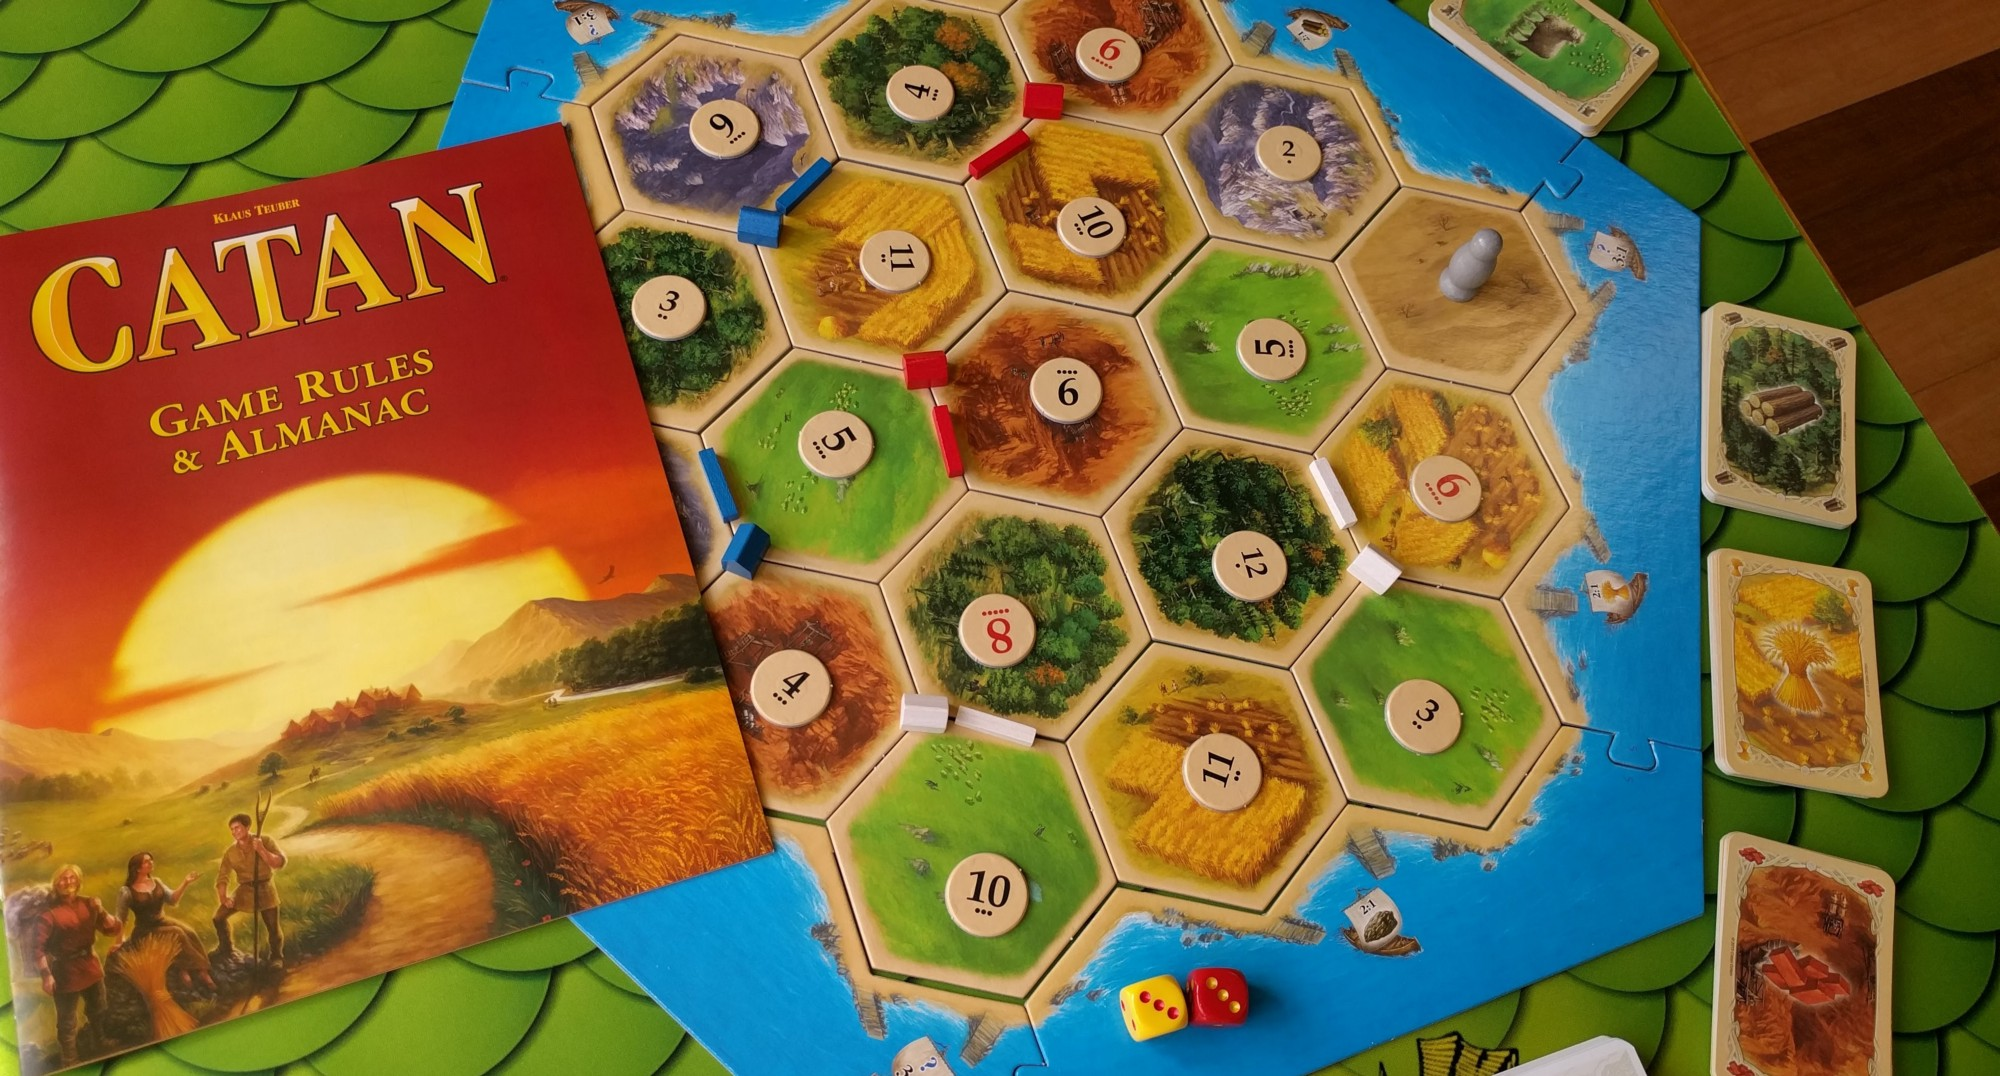 How to Play Settlers of Catan advise